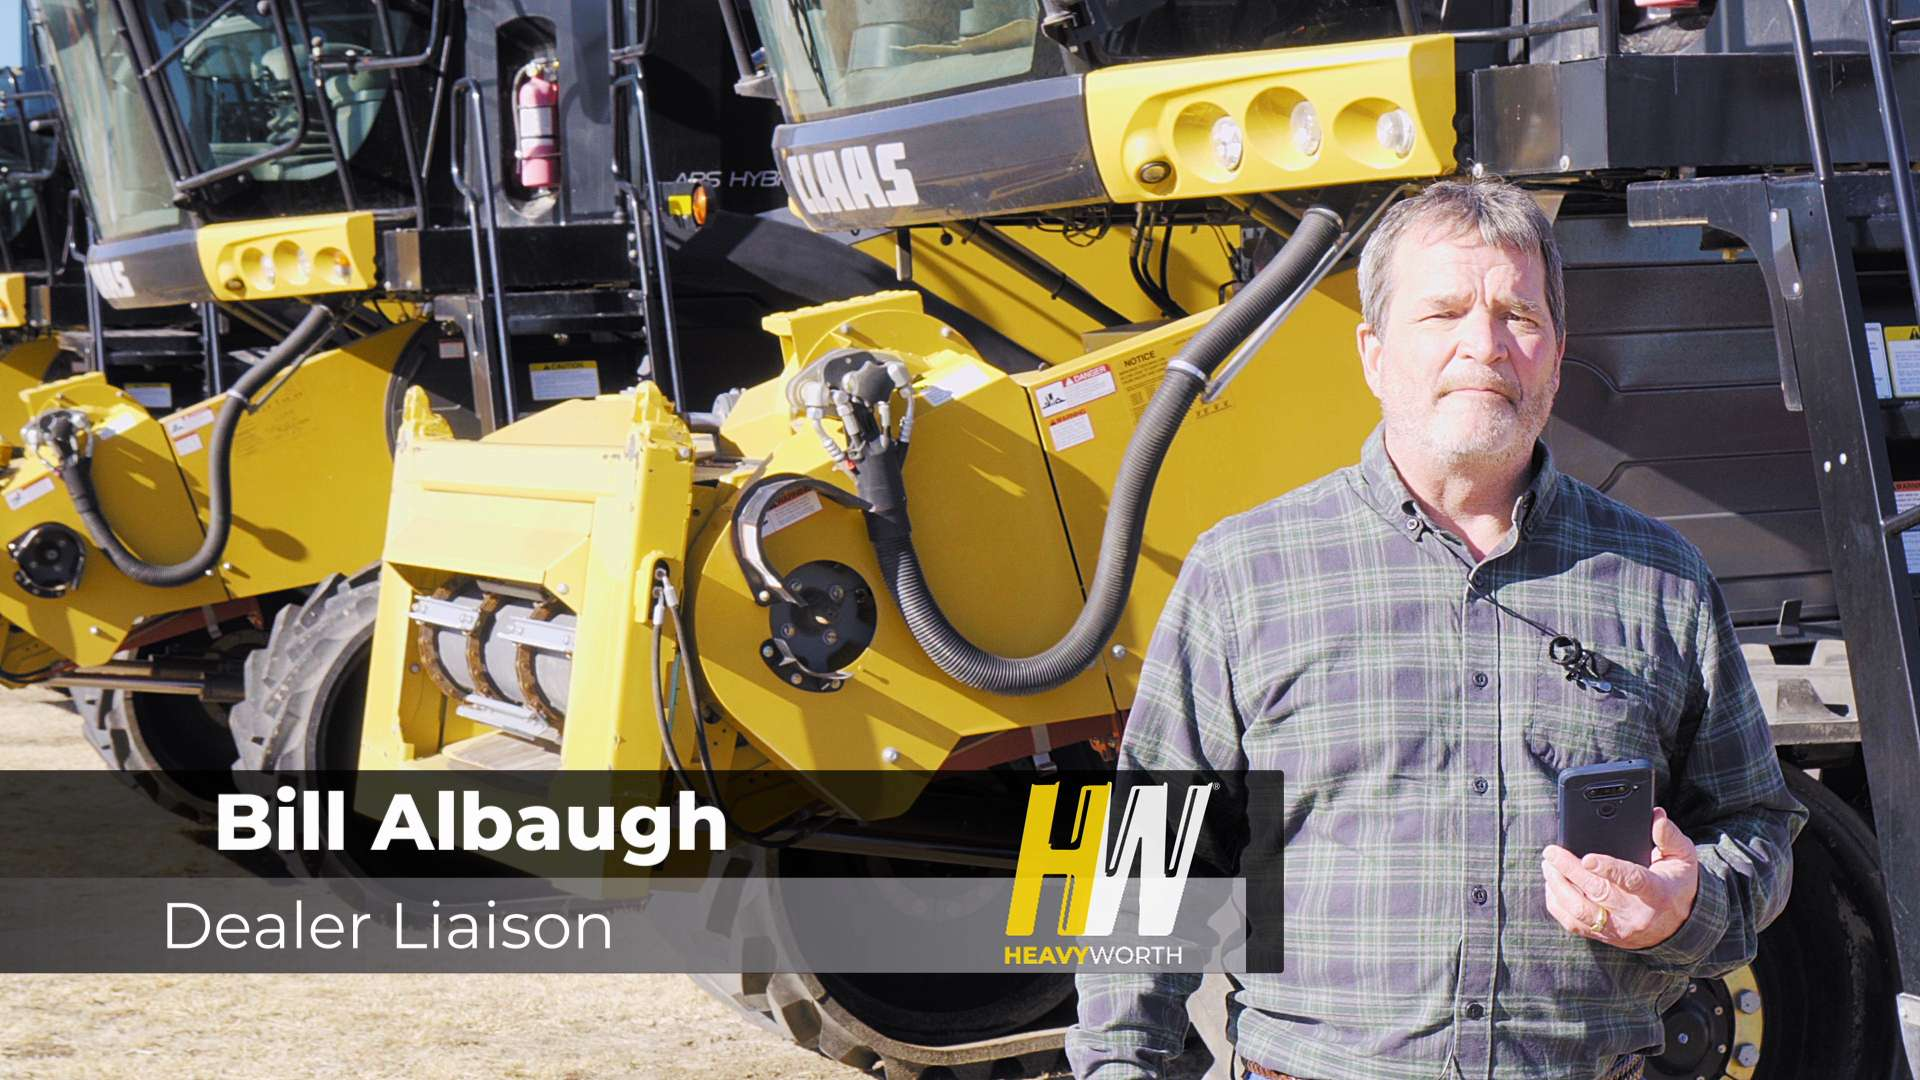 Bill Albaugh, HeavyWorth's dealer liaison